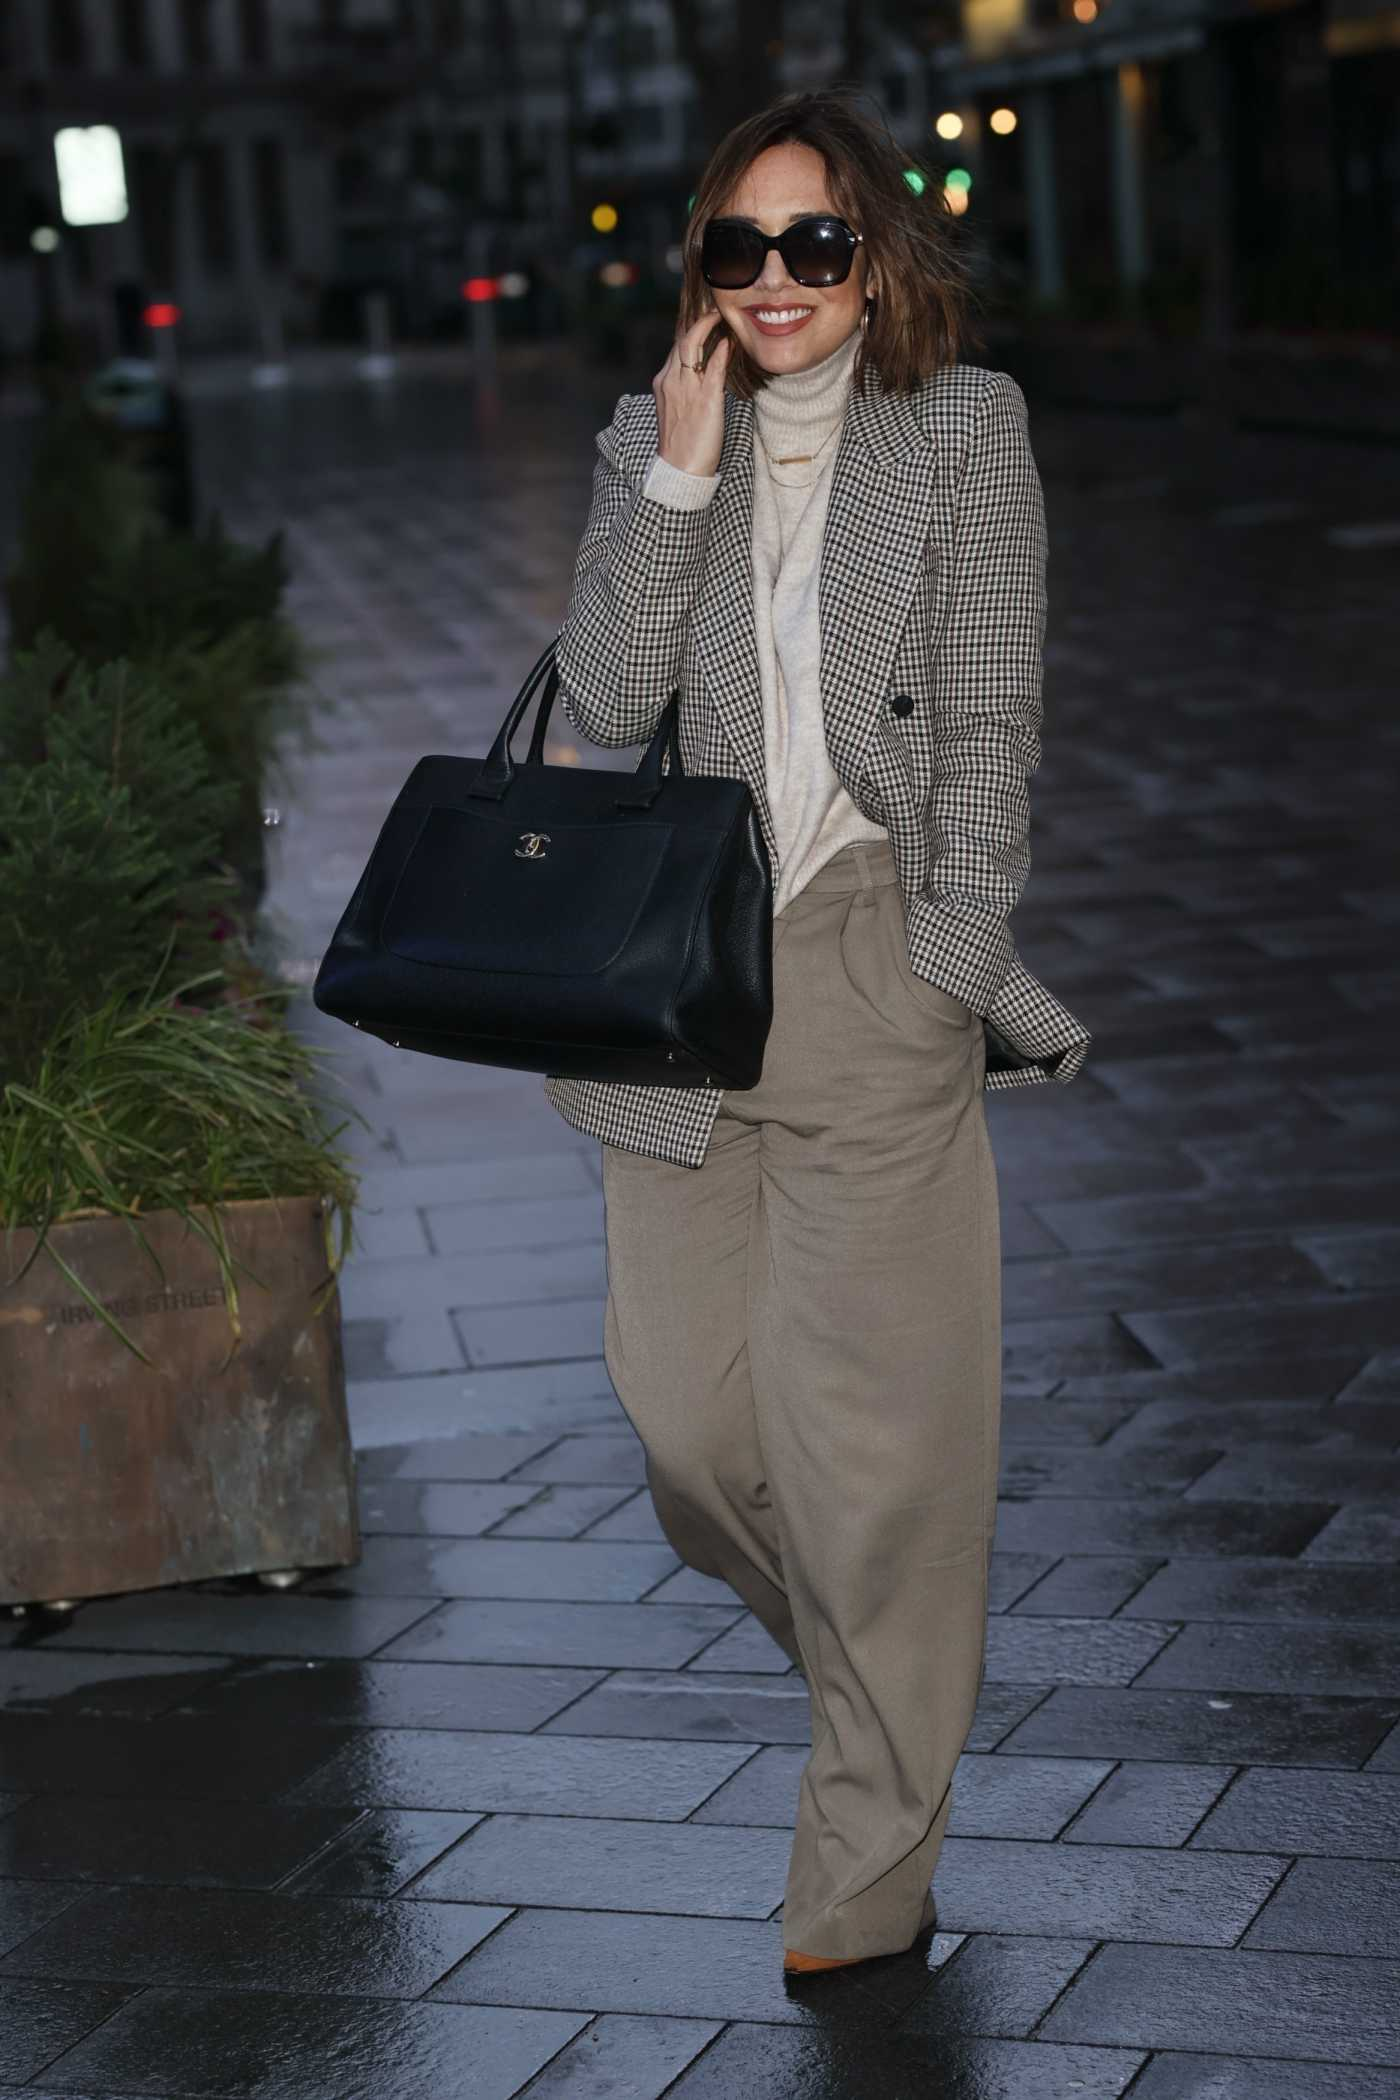 Myleene Klass in a Beige Pants Arrives at the Smooth Radio in London 11/14/2020